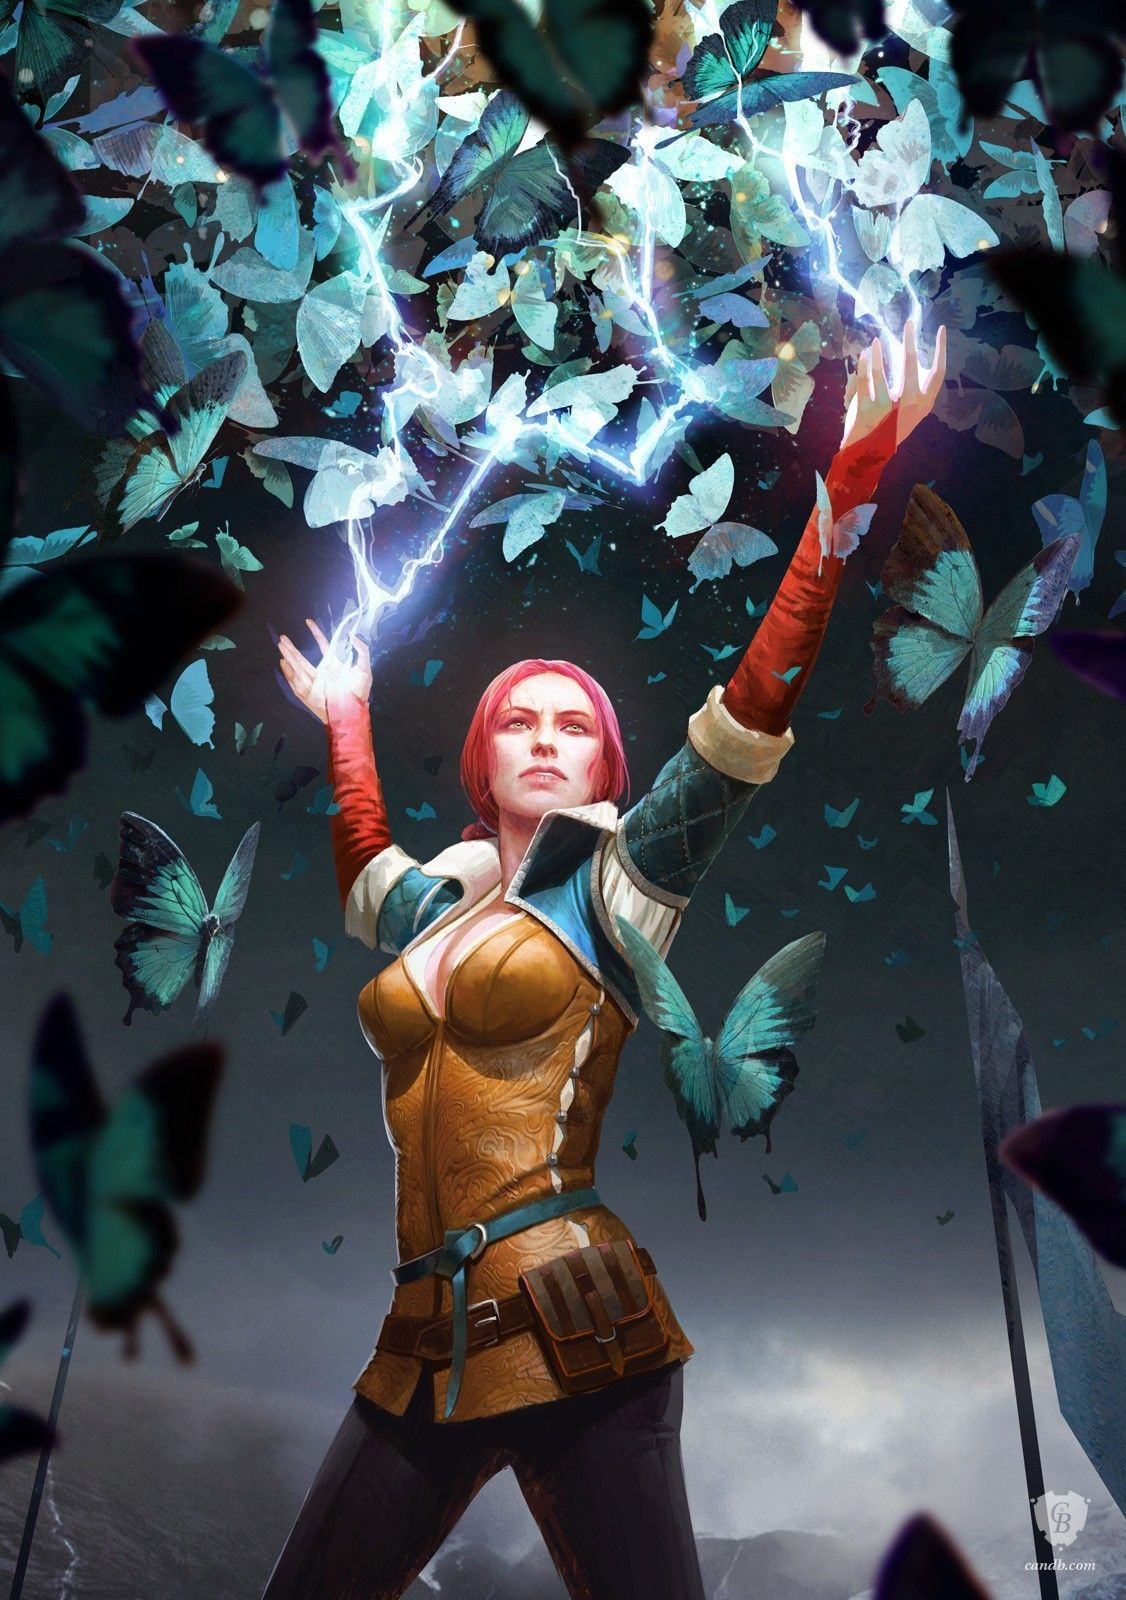 Artwork Triss Butterfly Spell Witcher 3 The Witcher 3 Board